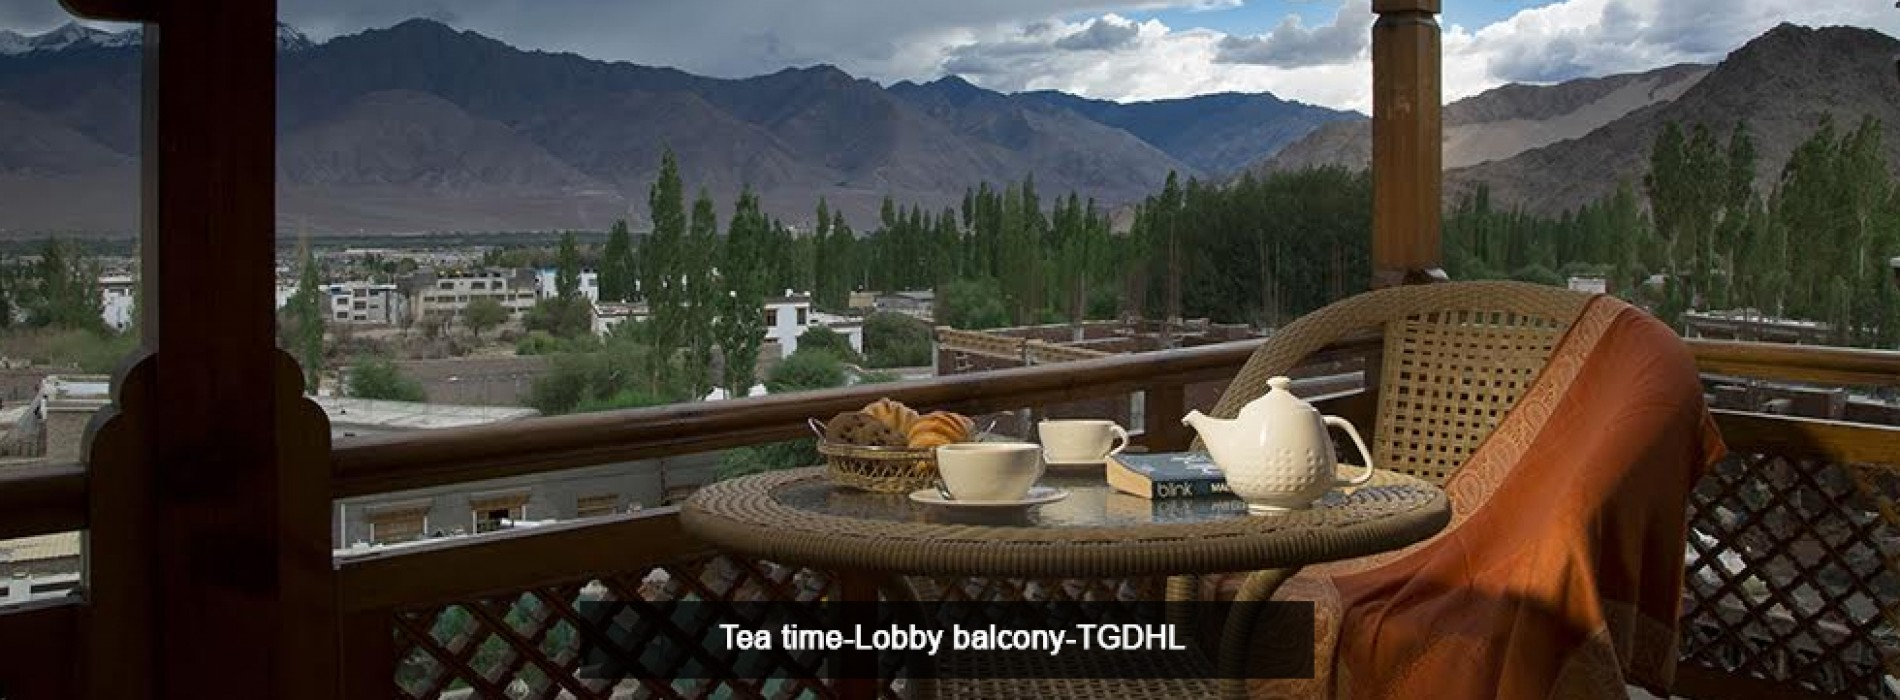 The Grand Dragon Hotel Ladakh – first international class hotel in remote and isolated outpost